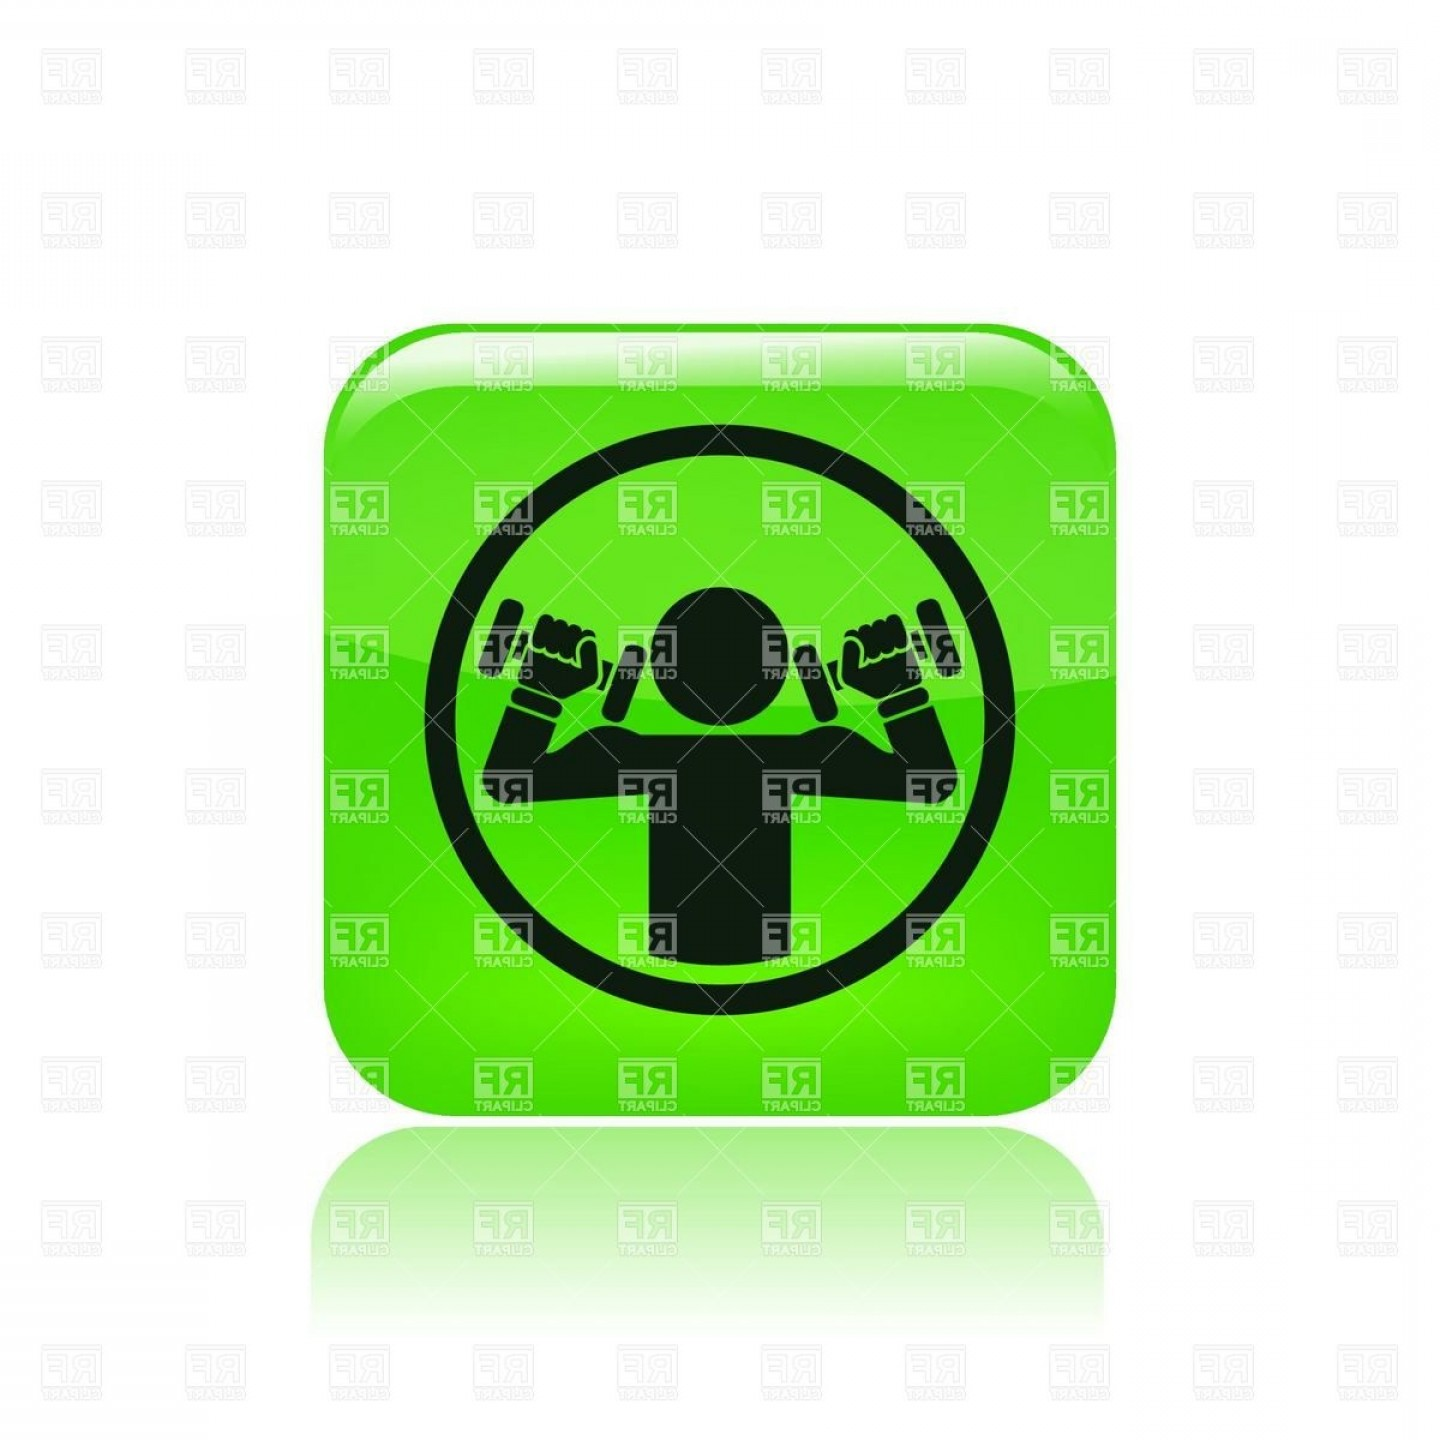 Weight Lifting Vector Graphics: Man With Dumbbells Near Head Weightlifting Icon Vector Clipart